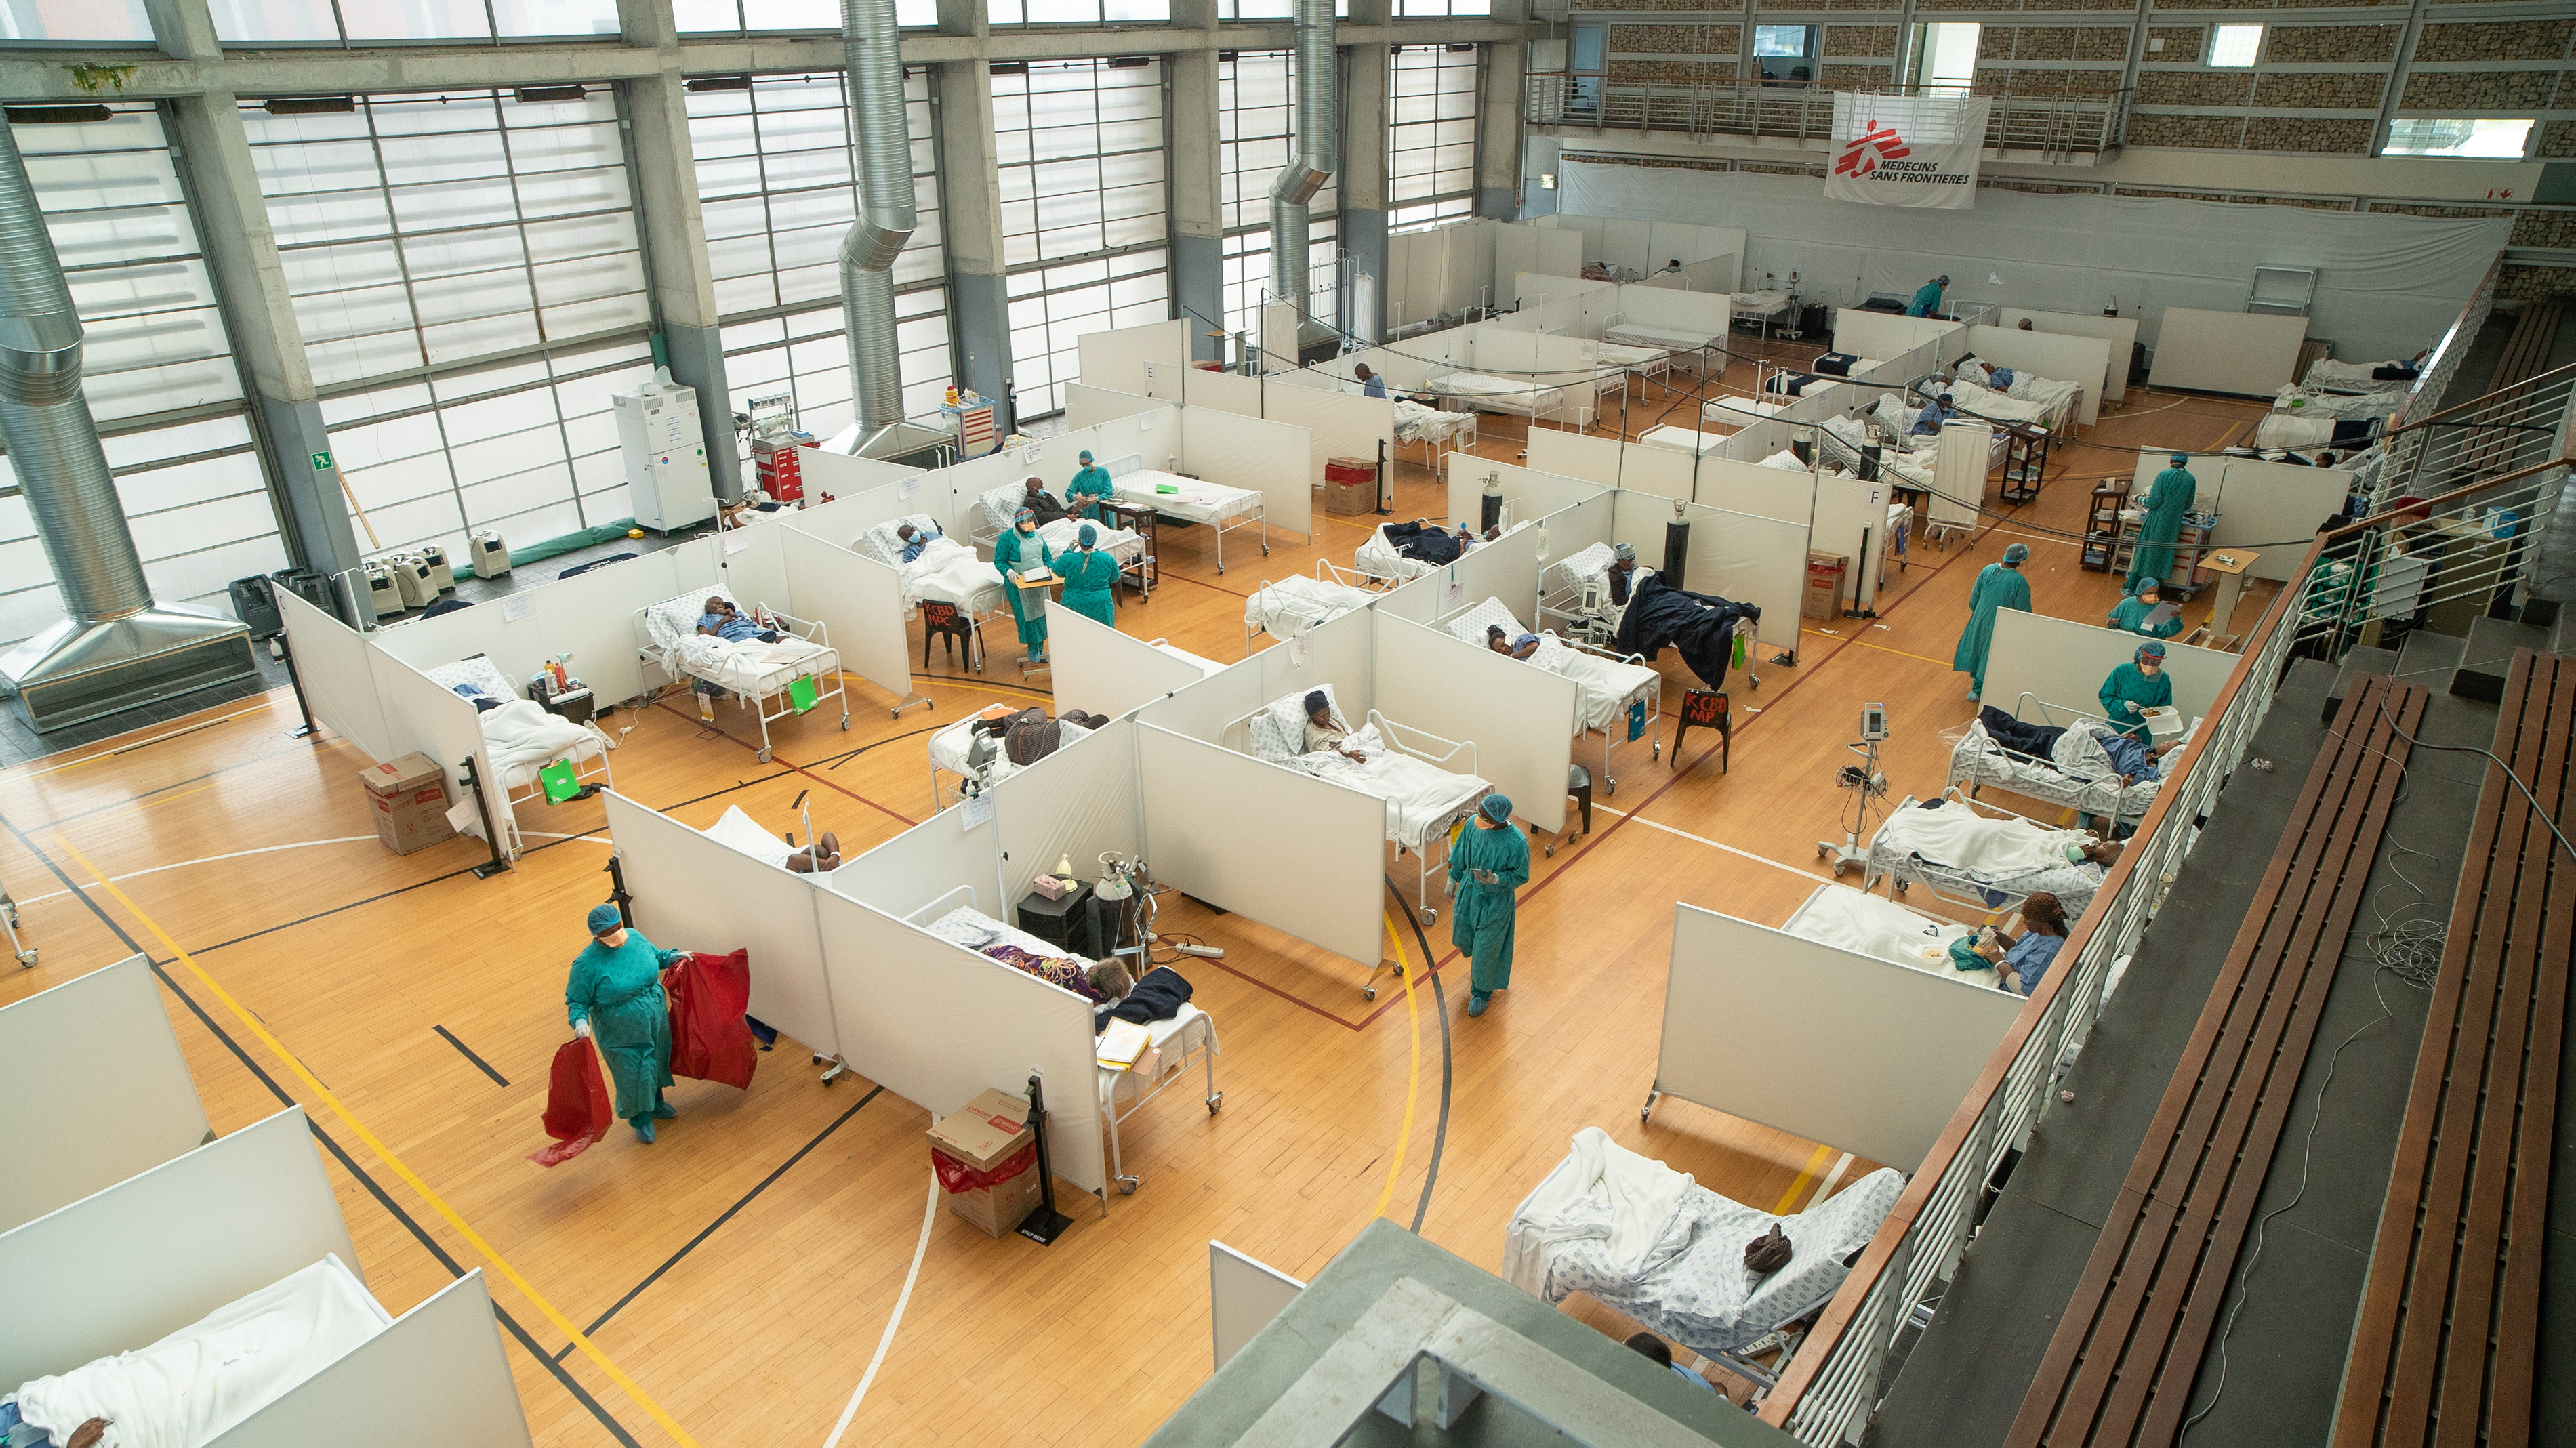 The 60-bed Khayelitsha Field Hospital was developed by MSF to support the nearby Khayelitsha District Hospital to cope with the pressures of peak COVID-19 transmission in the Western Cape.